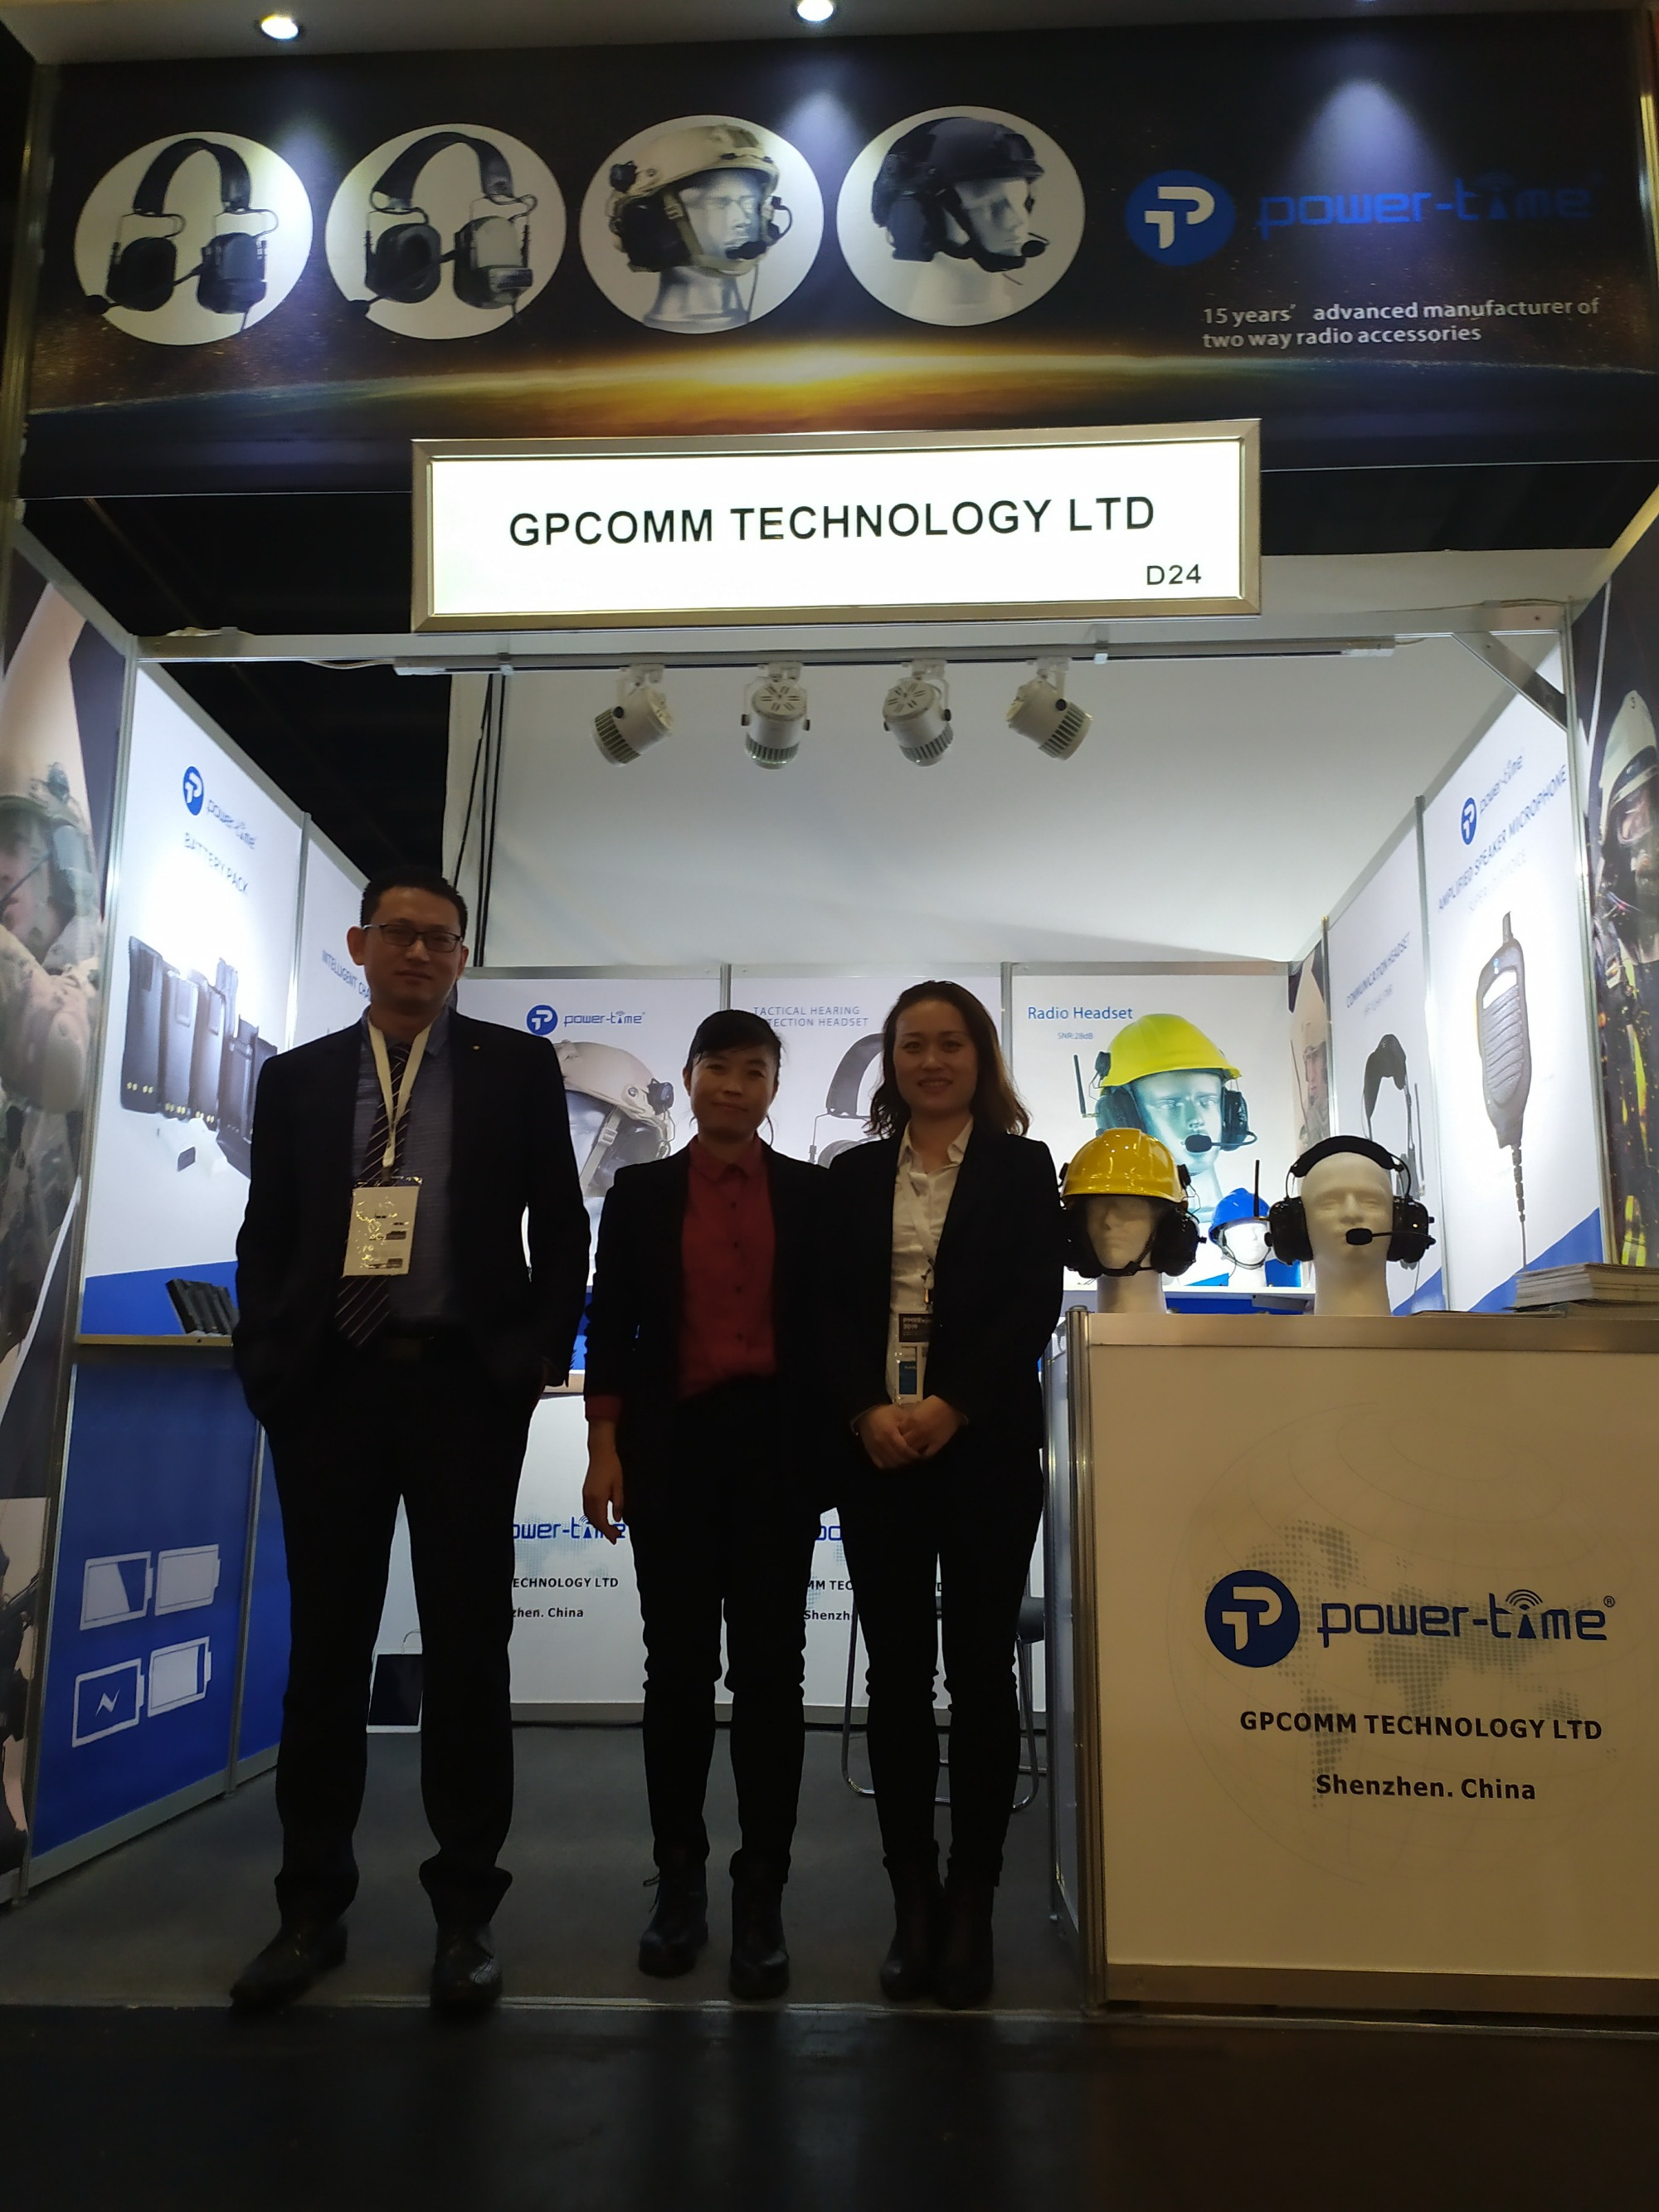 PMRExpo - thanks for visiting our booth D24